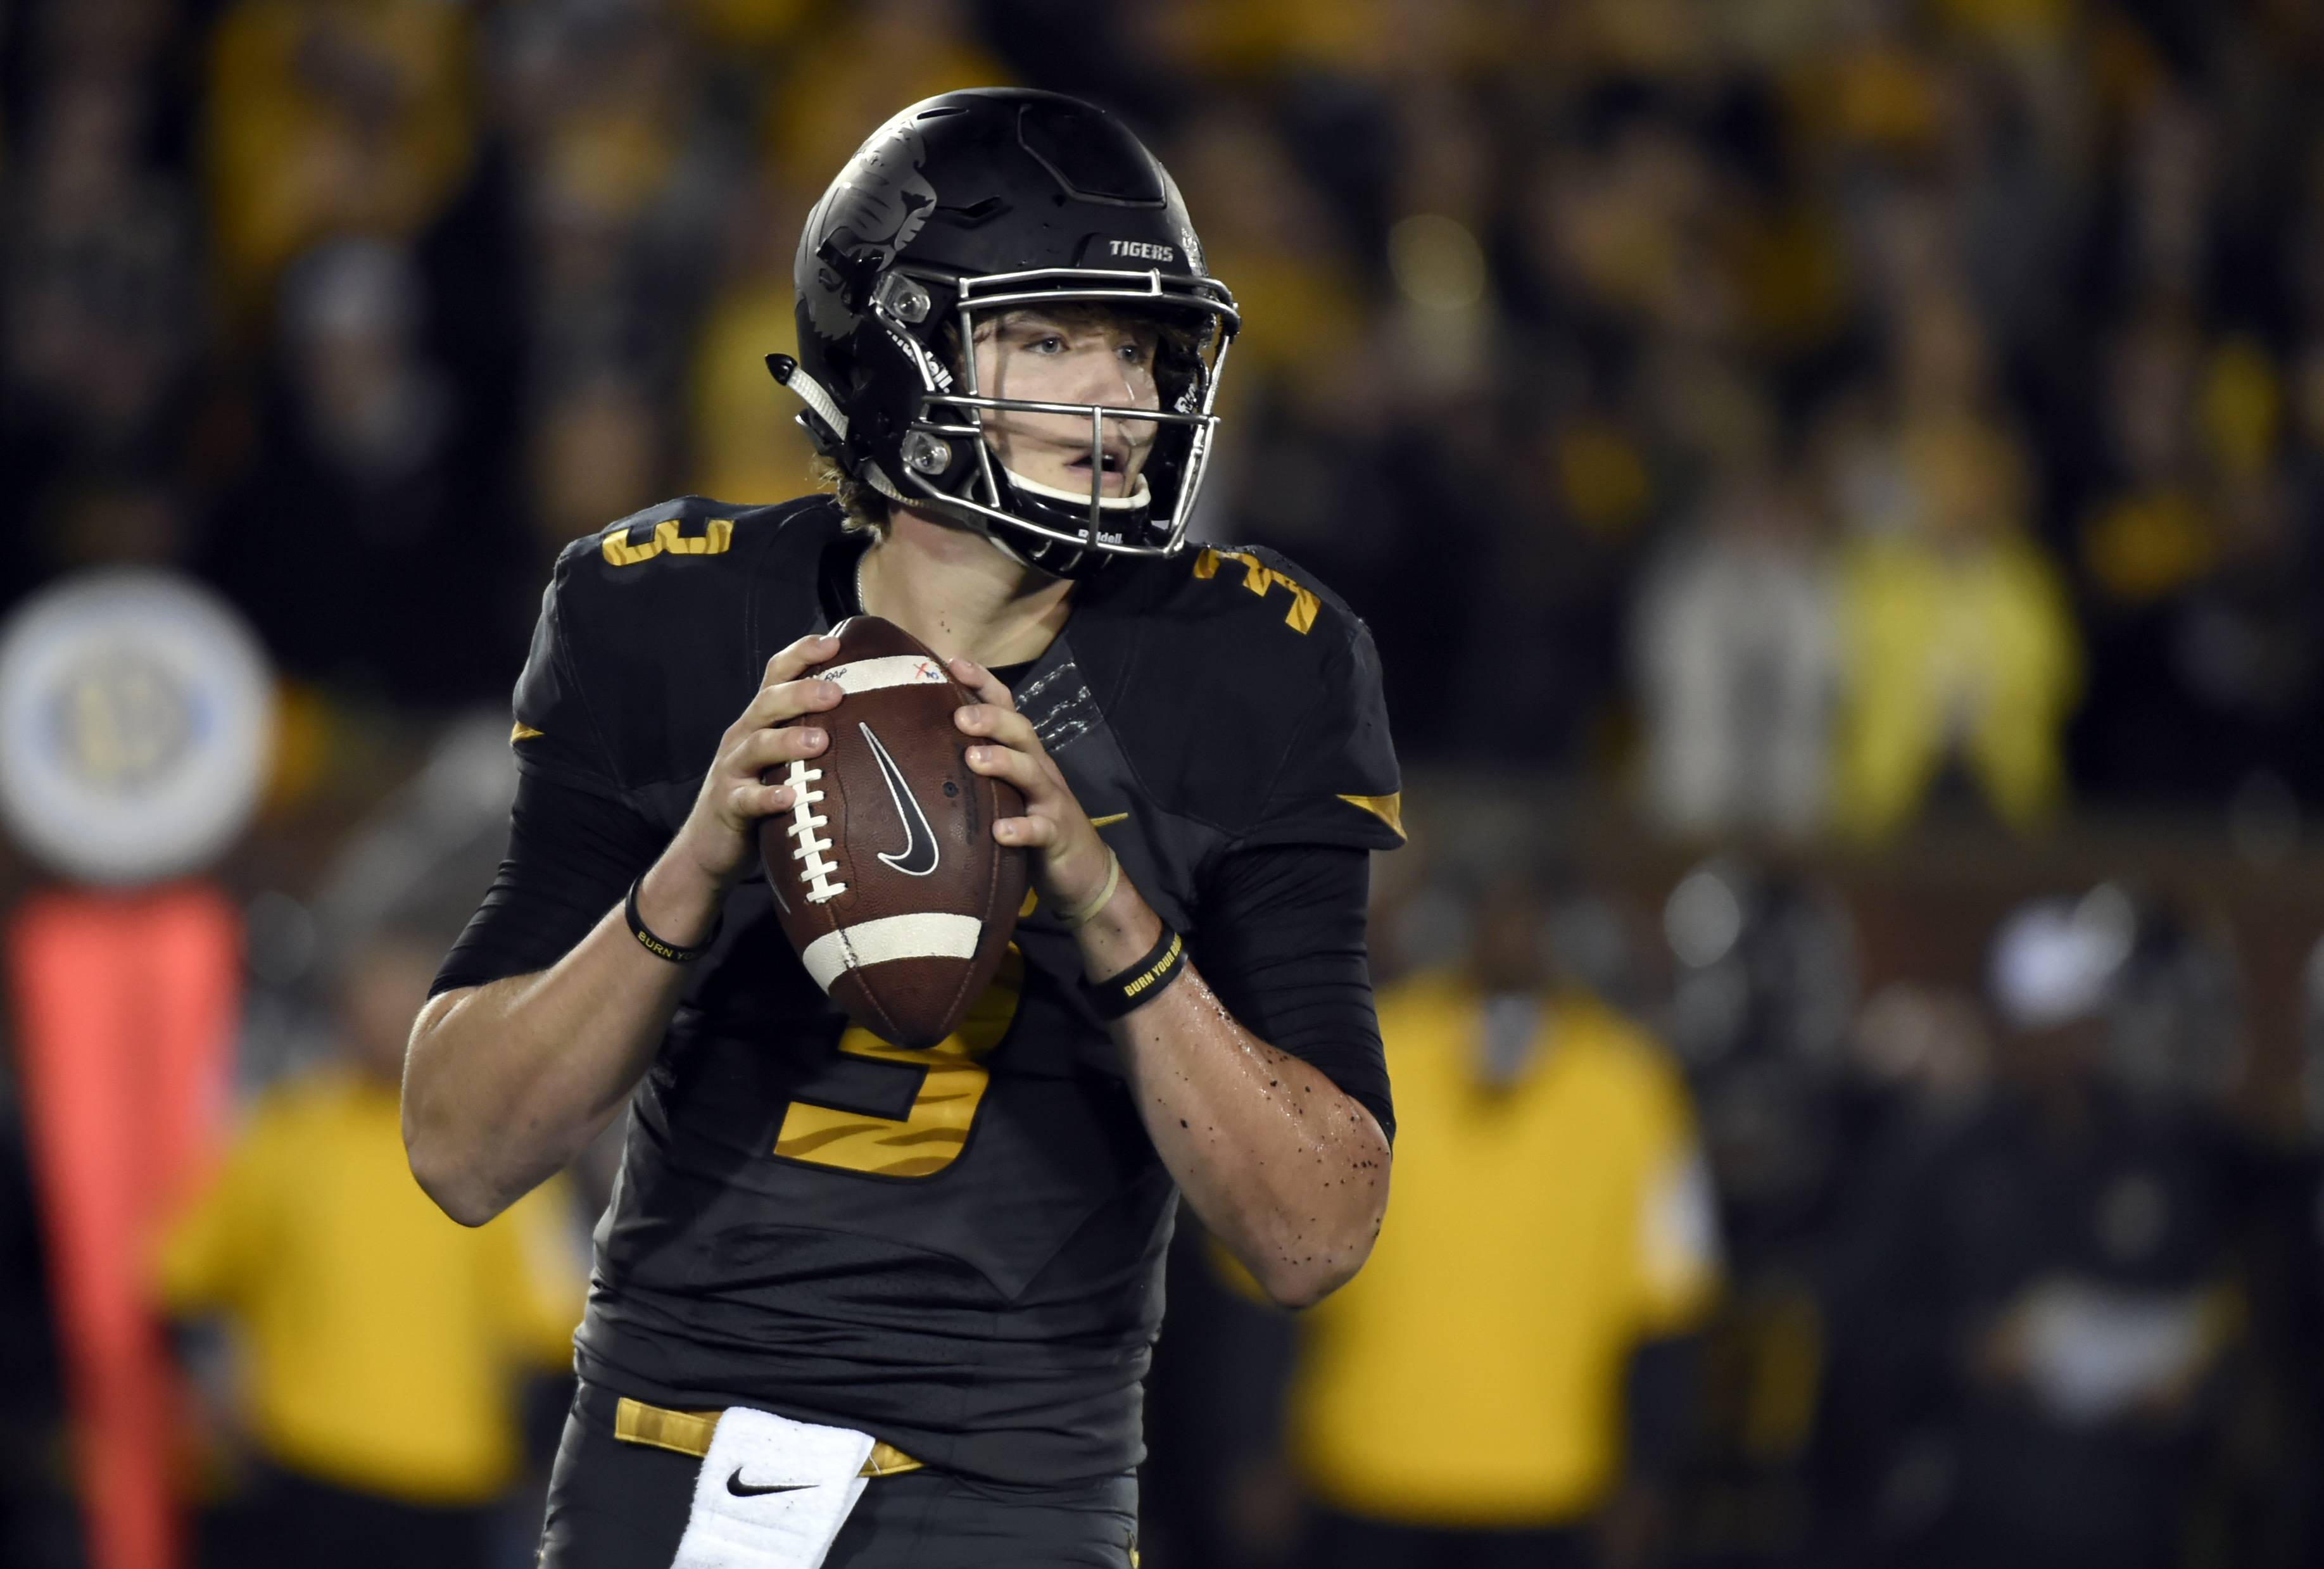 Missouri quarterback Drew Lock drops back to pass during the first half of an NCAA college football game against Mississippi State on Thursday, Nov. 5, 2015, in Columbia, Mo. (AP Photo/L.G Patterson)